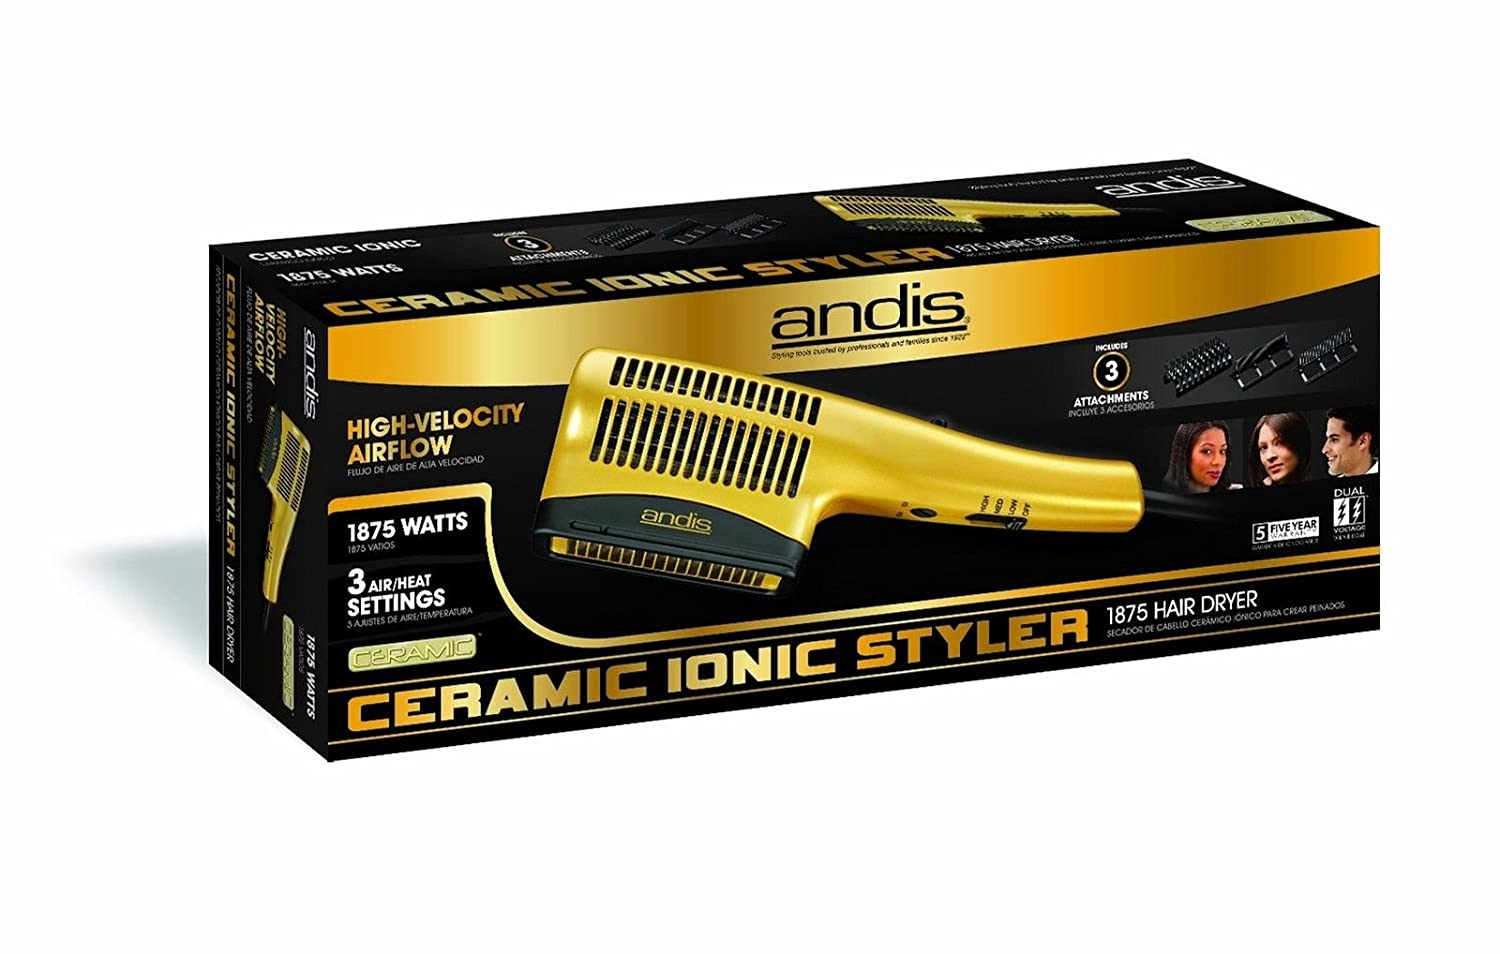 Amazon.com: Ceramic Ionic Styler Hair Blow Dryer Straight Curl Comb Brush Smooth Silky Salon: Health & Personal Care